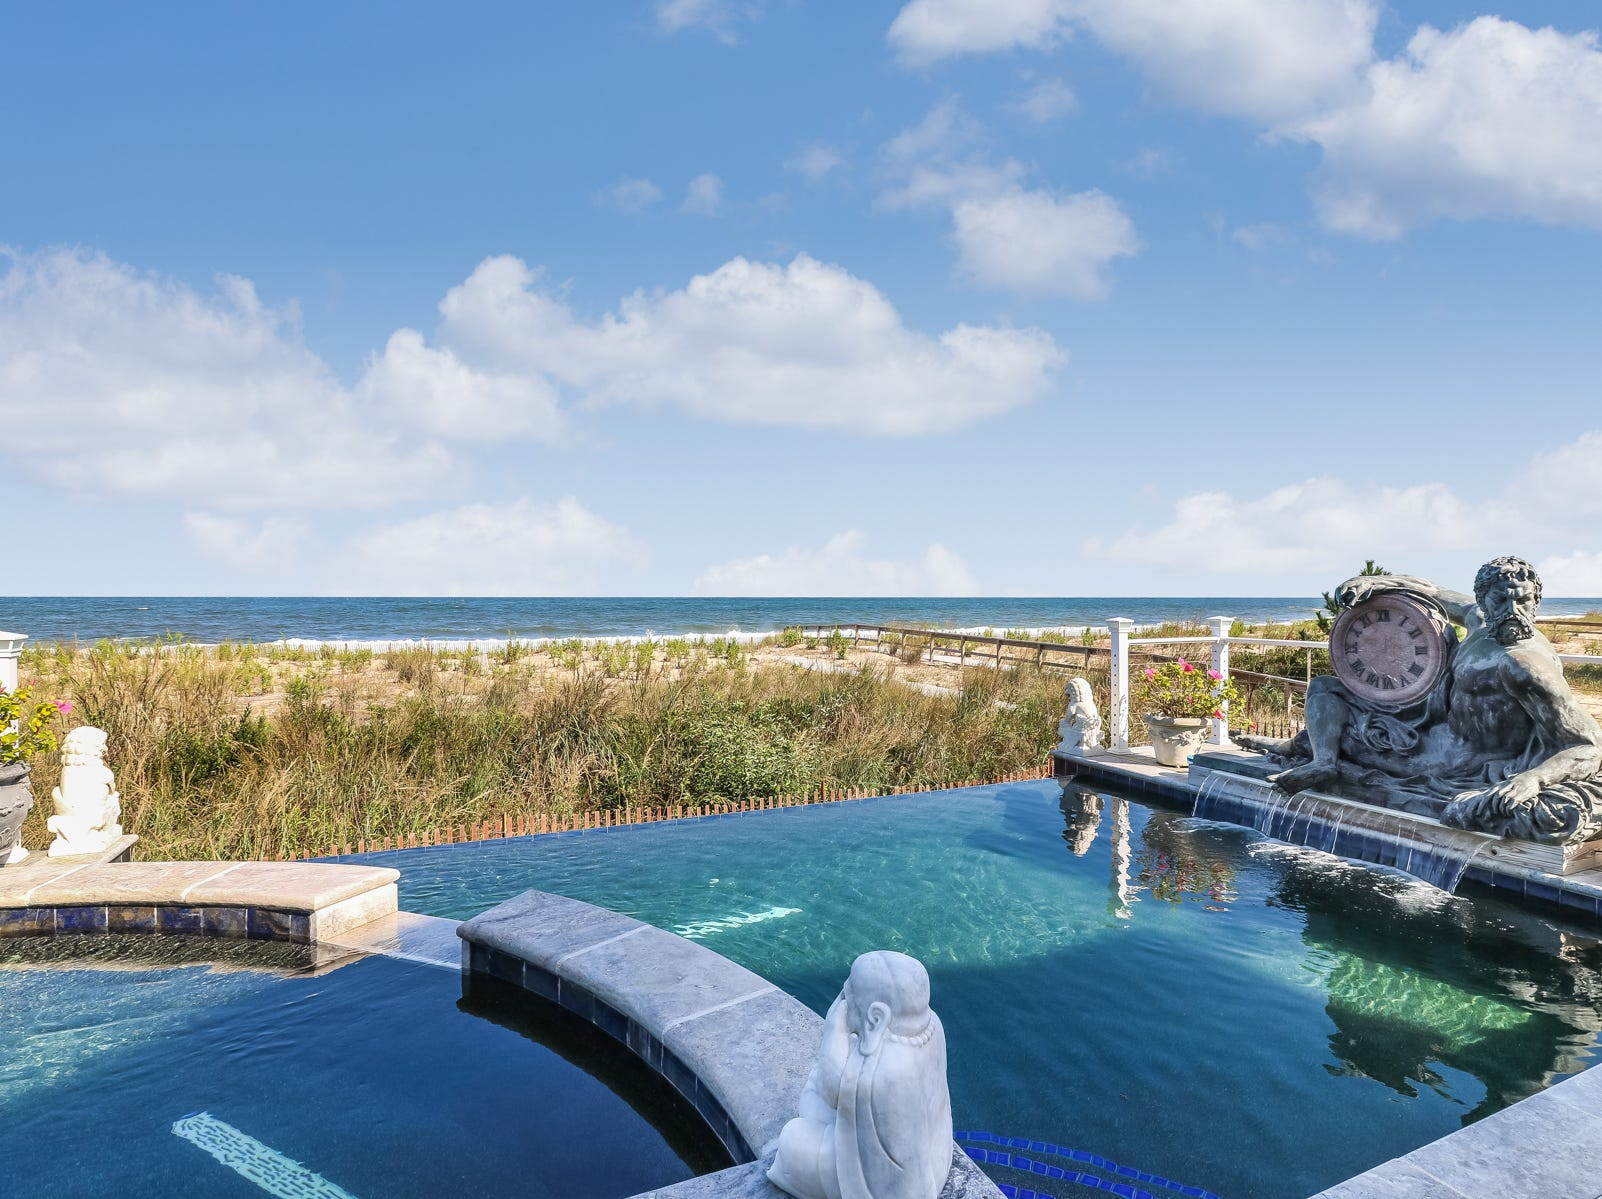 The infinity pool and spa at 18 Ocean Drive in North Beach offer views of the ocean.